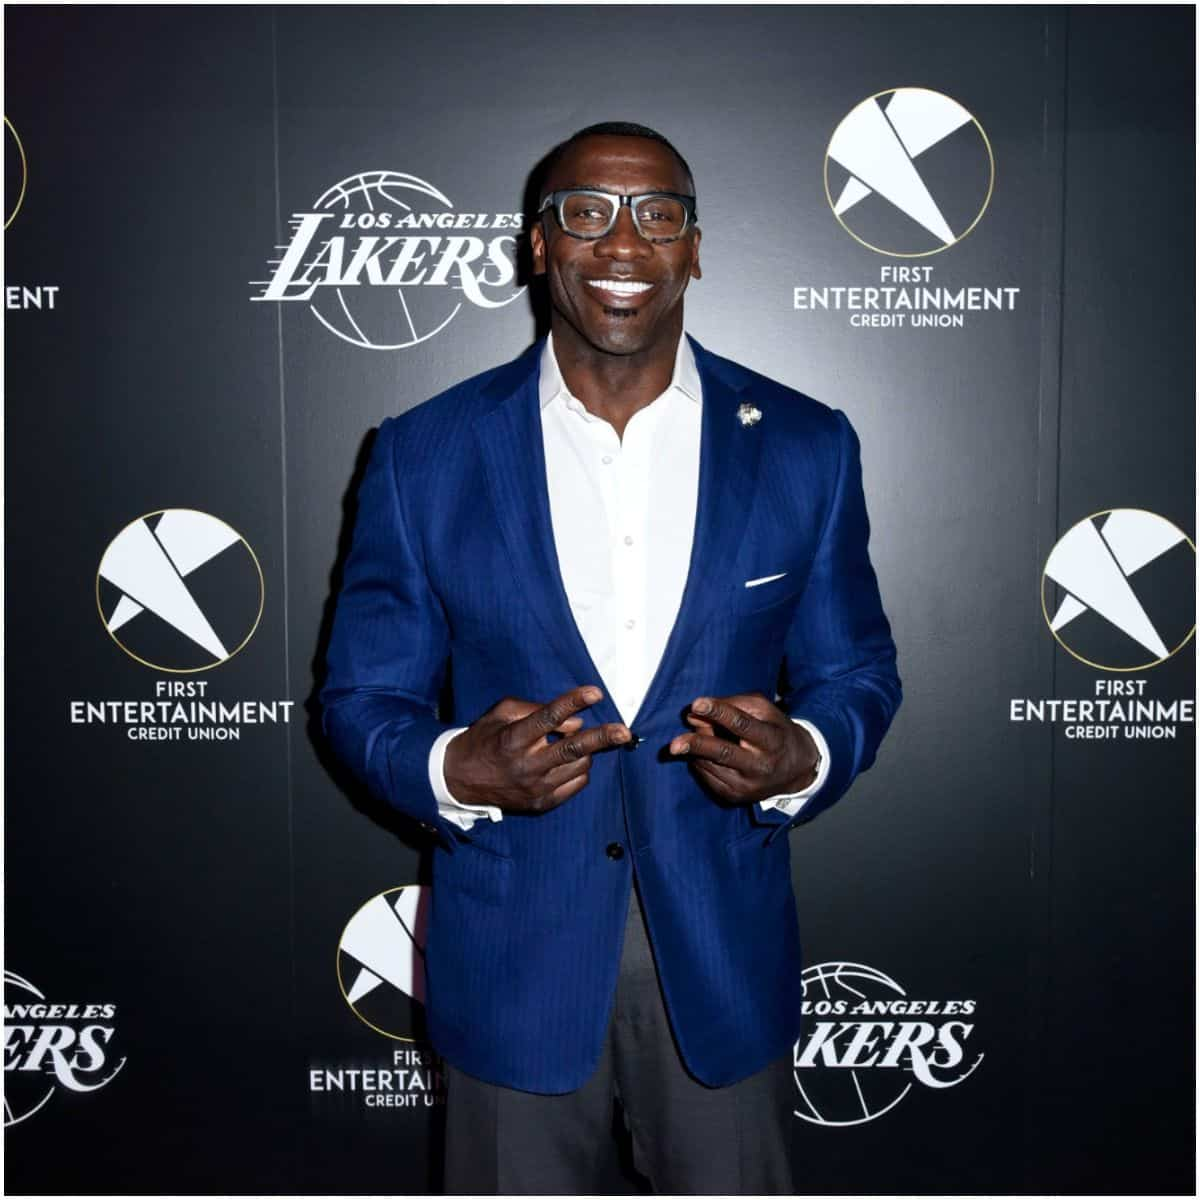 what is the net worth of Shannon Sharpe